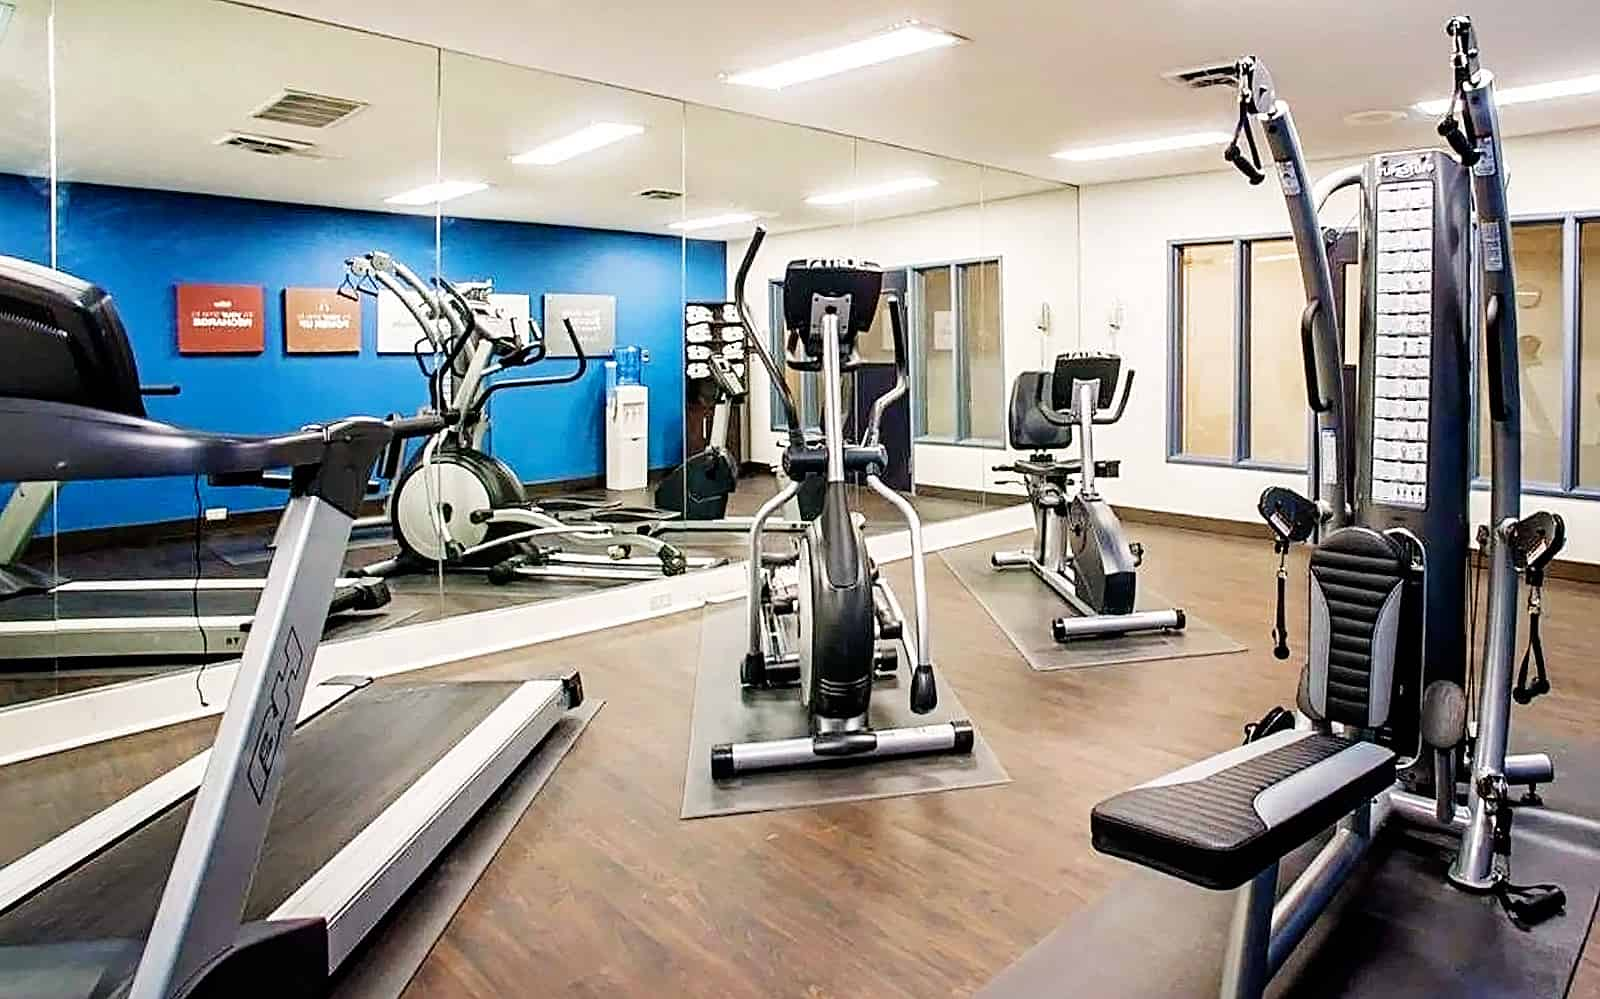 Comfort Suites Airport fitness center